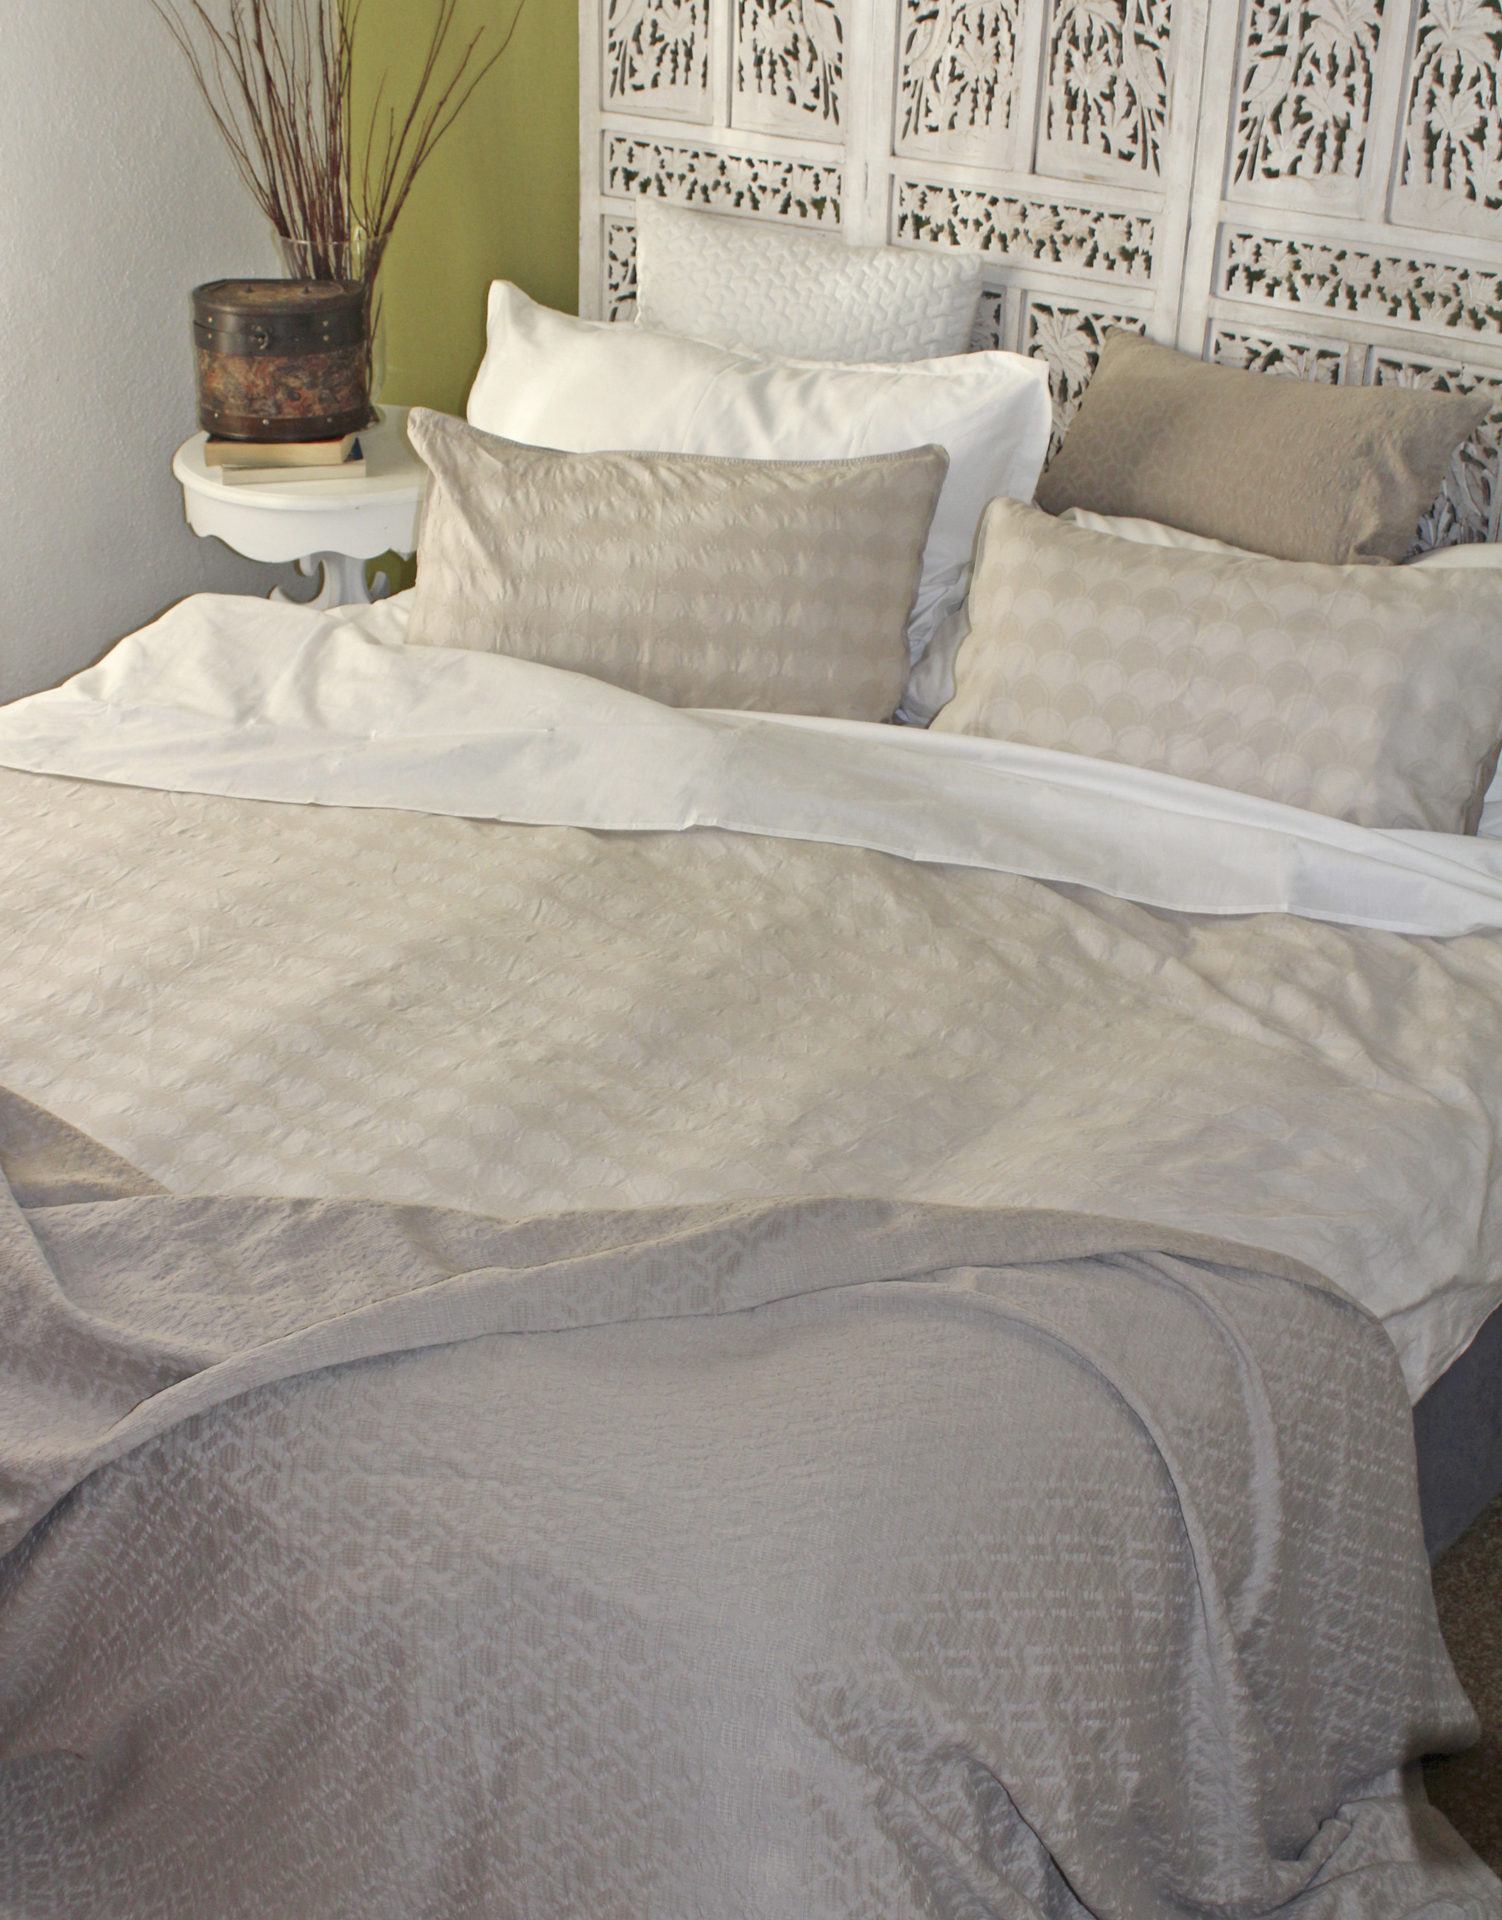 scallop bedding duvet cover nordstrom covers c home peri